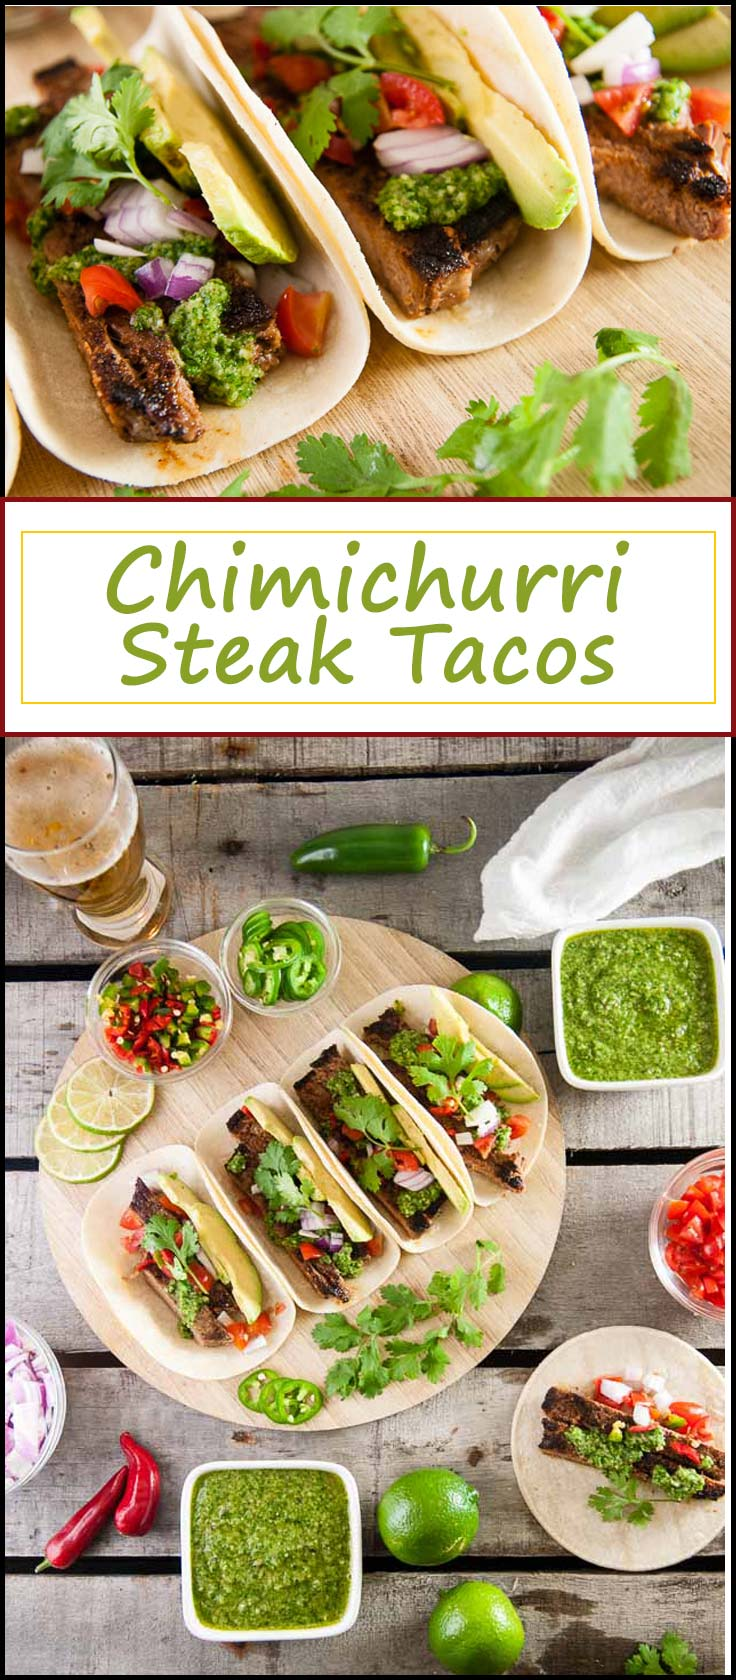 Chimichurri Steak Tacos are a bold taco recipe perfect for dinner on taco Tuesday from www.seasonedsprinkles.com